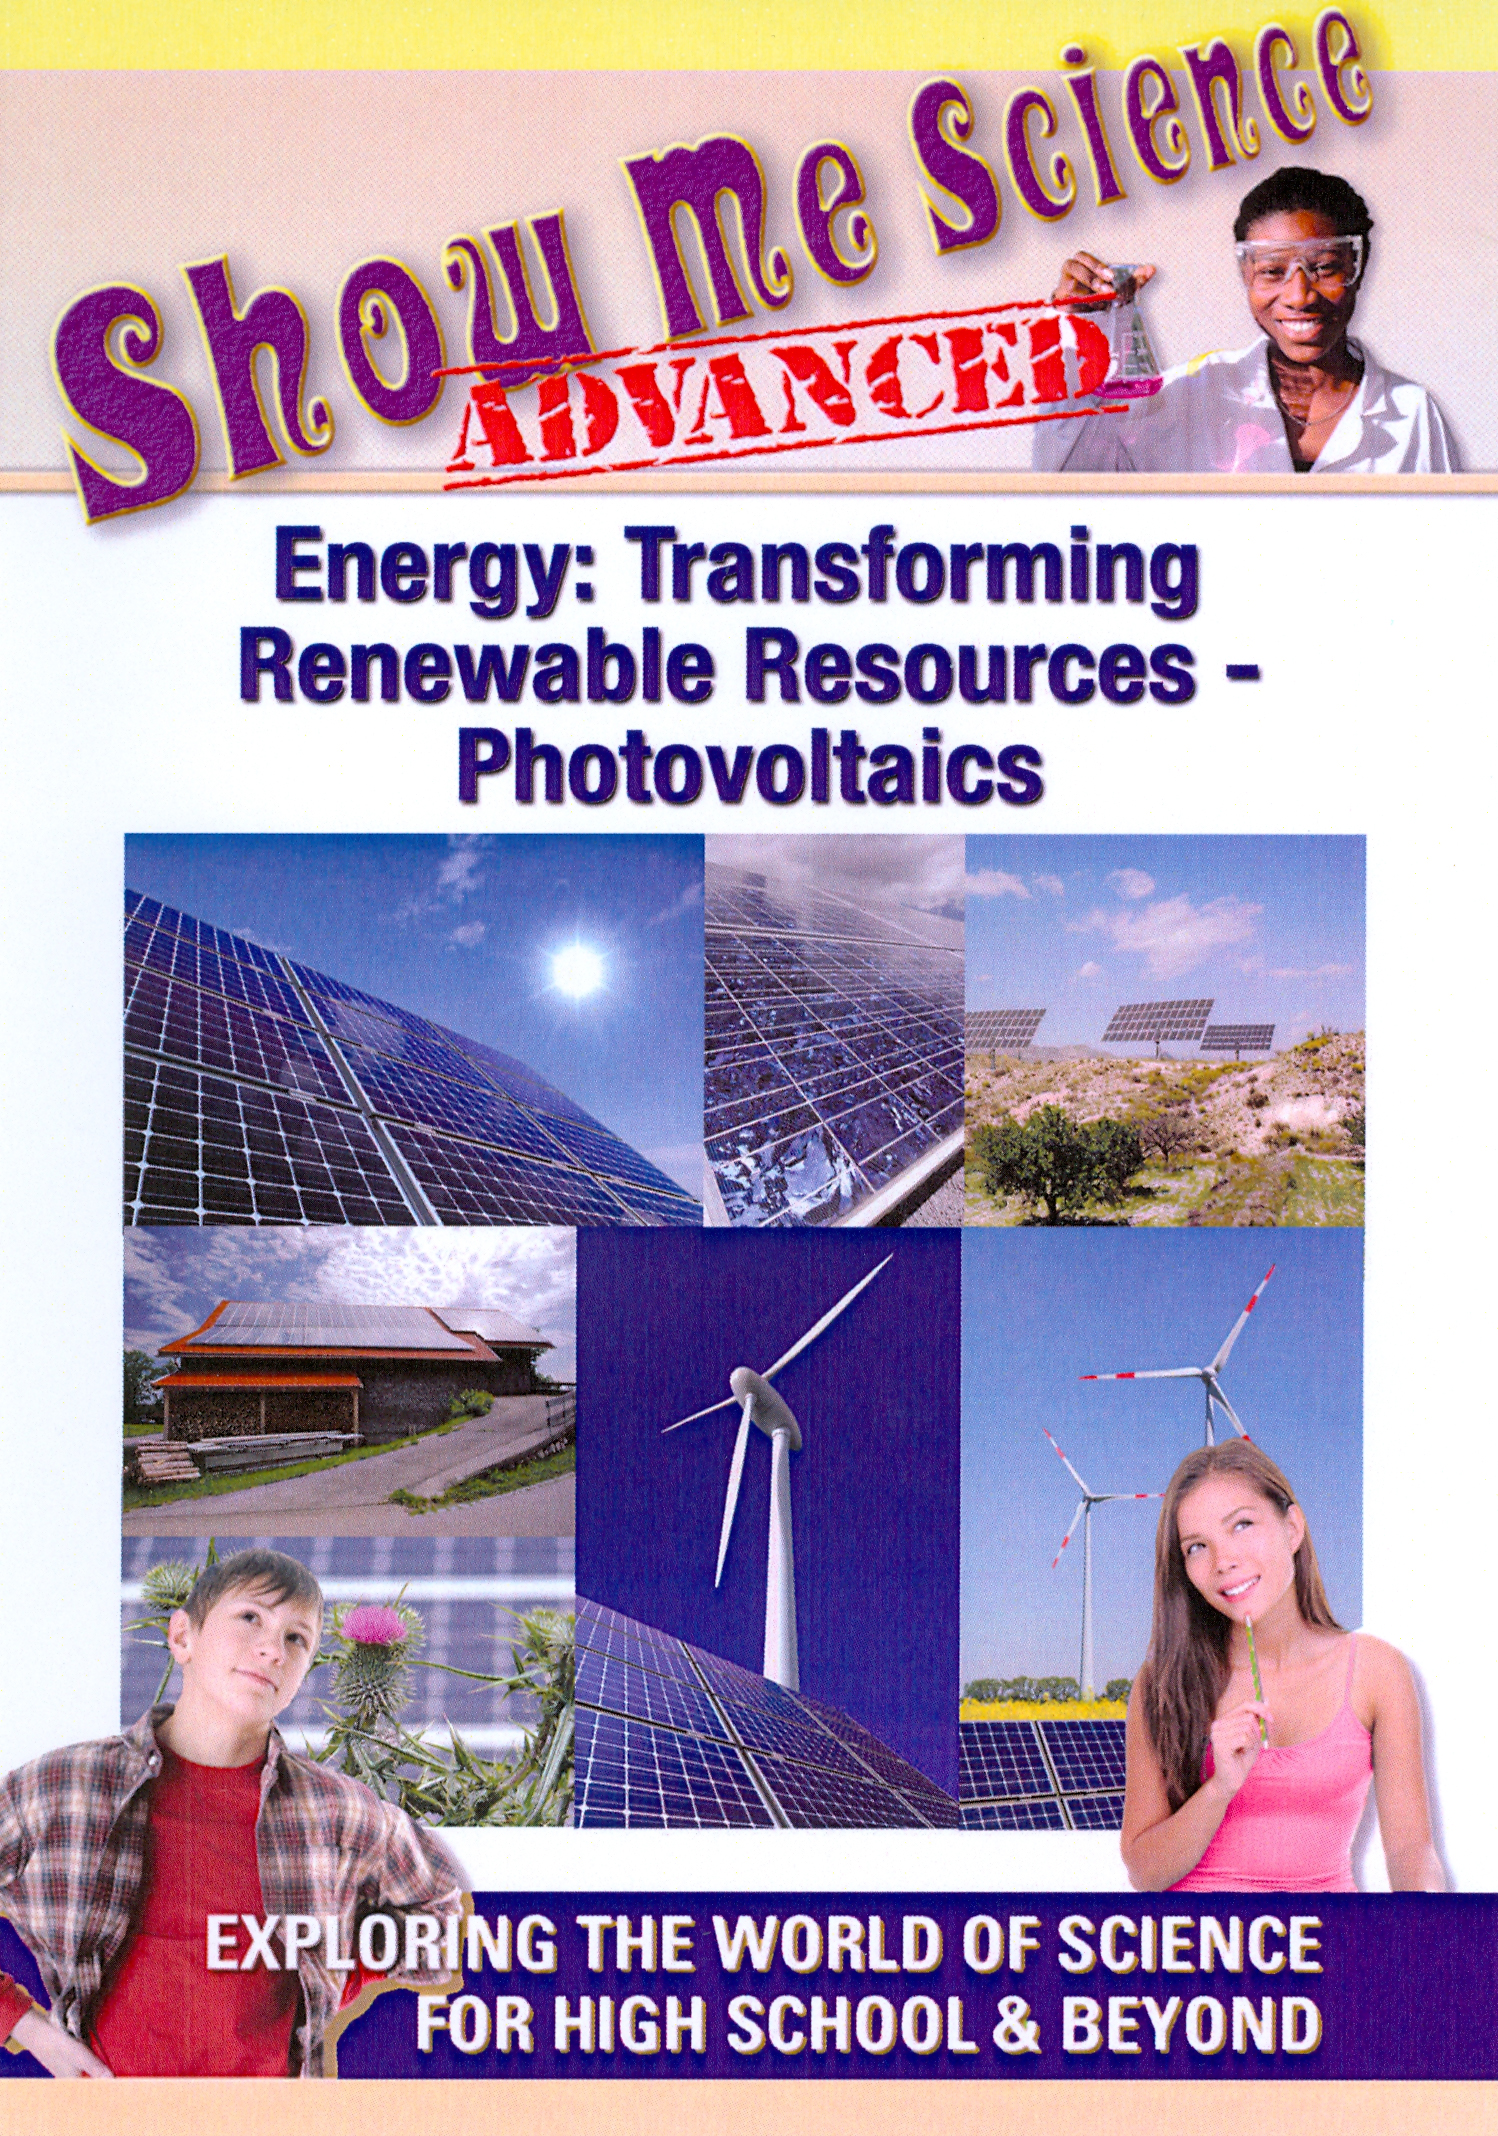 Show Me Science Advanced: Energy - Transforming Renewable Resources: Photovoltaics